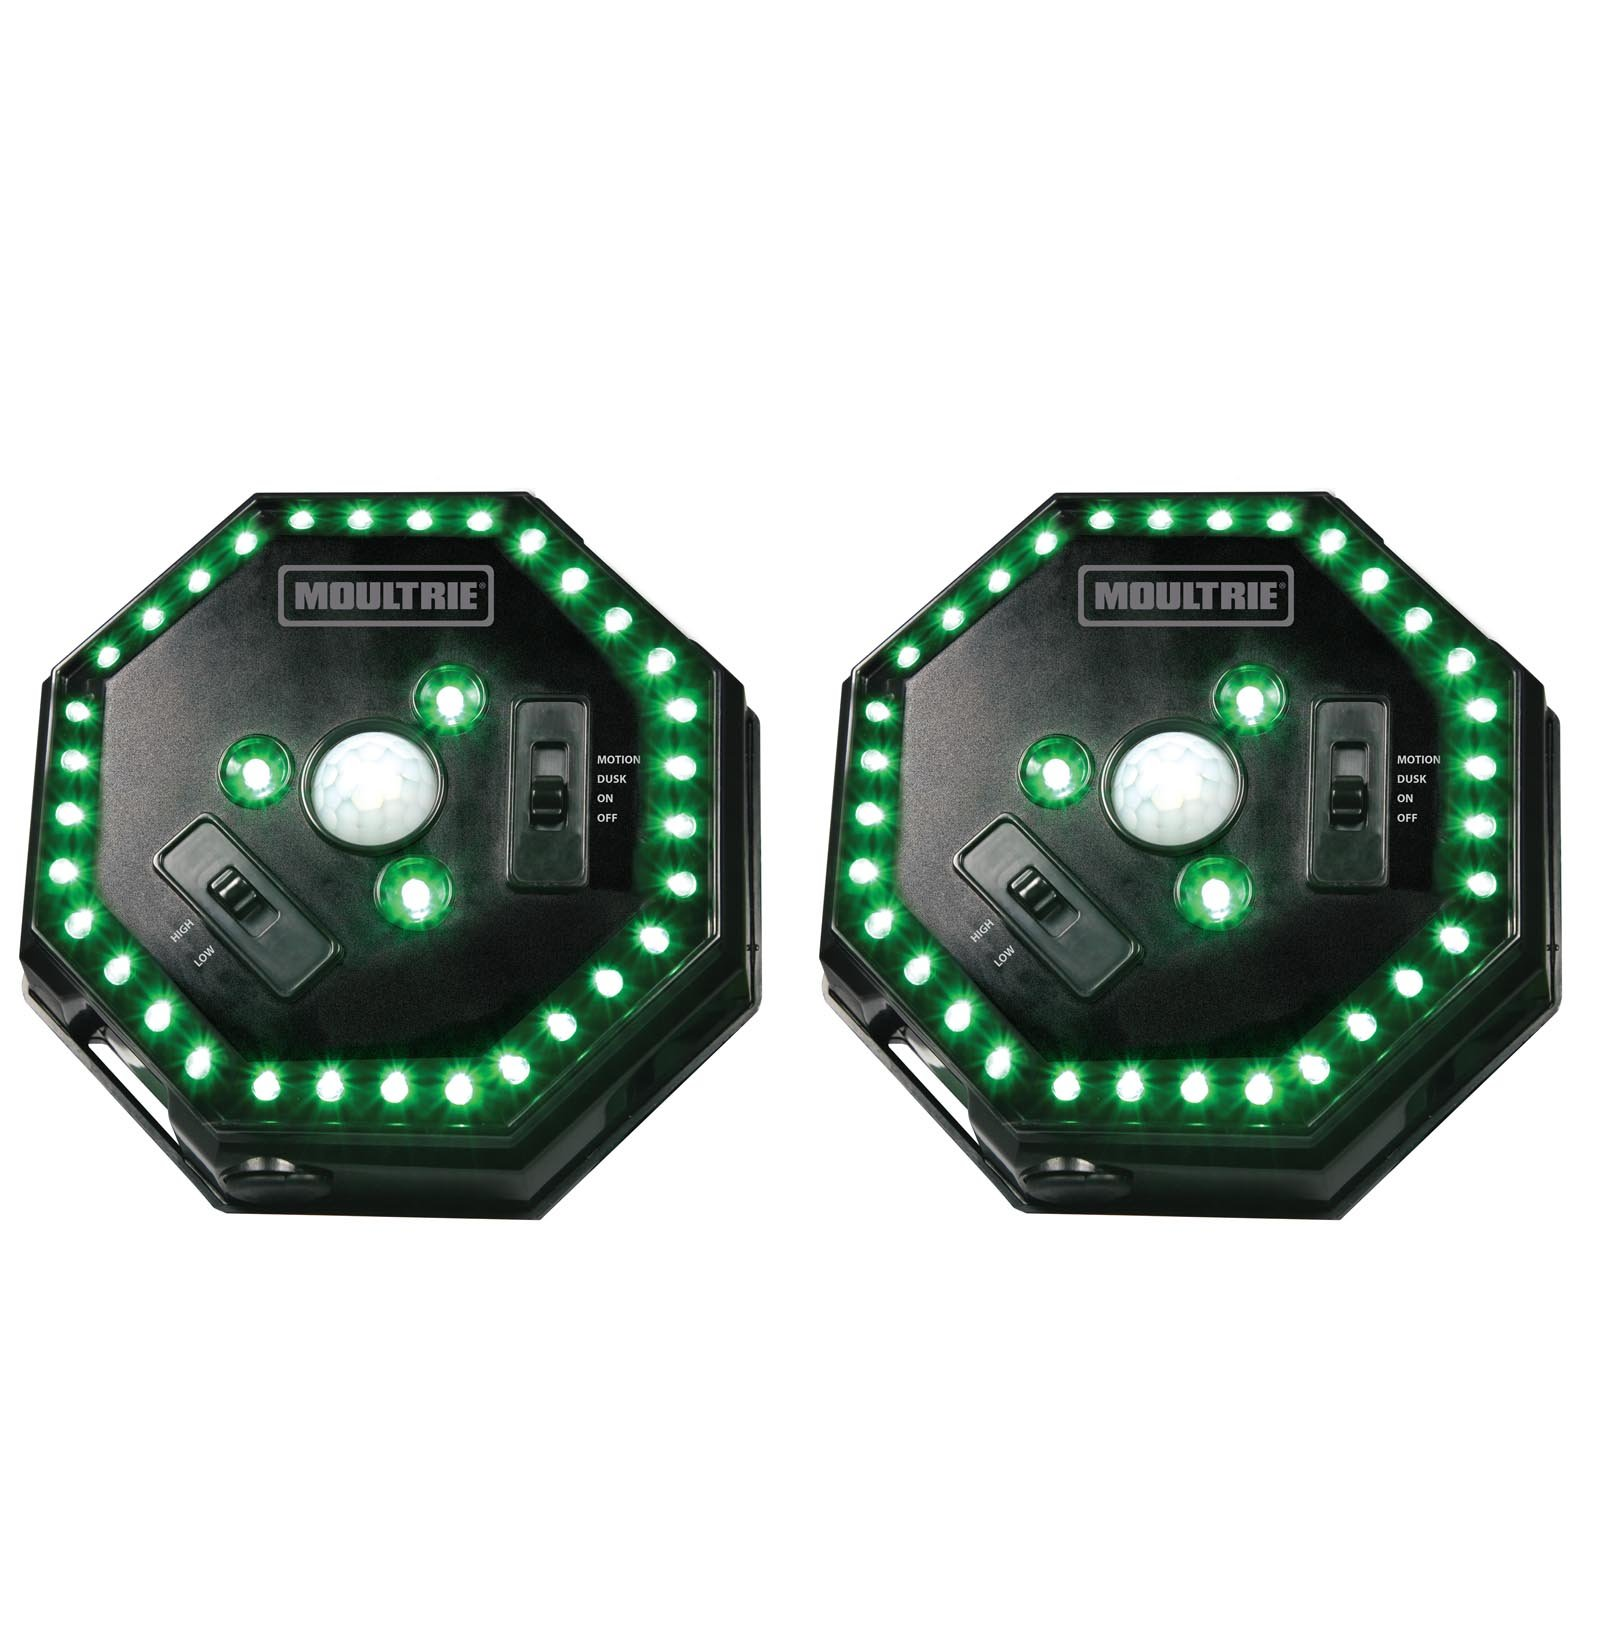 (2) MOULTRIE Motion-Activated LED Feeder Hog Lights w/ 30FT Radius | MFA-12651 by Moultrie